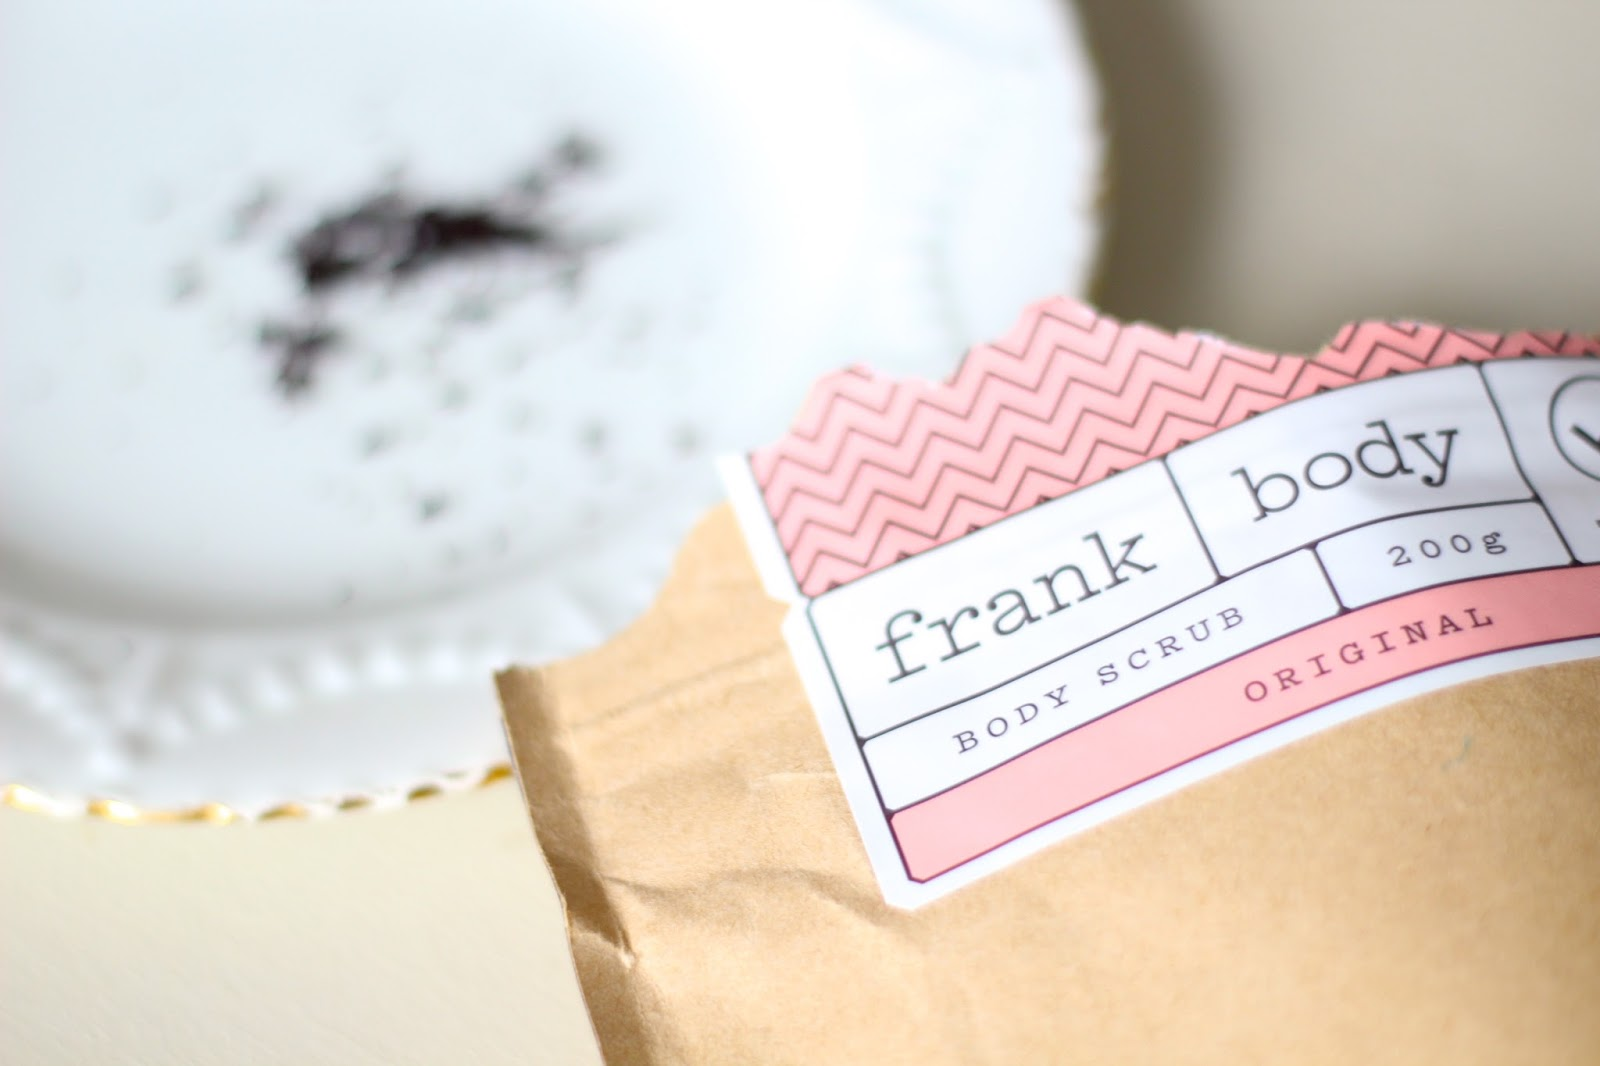 how to make frank body scrub